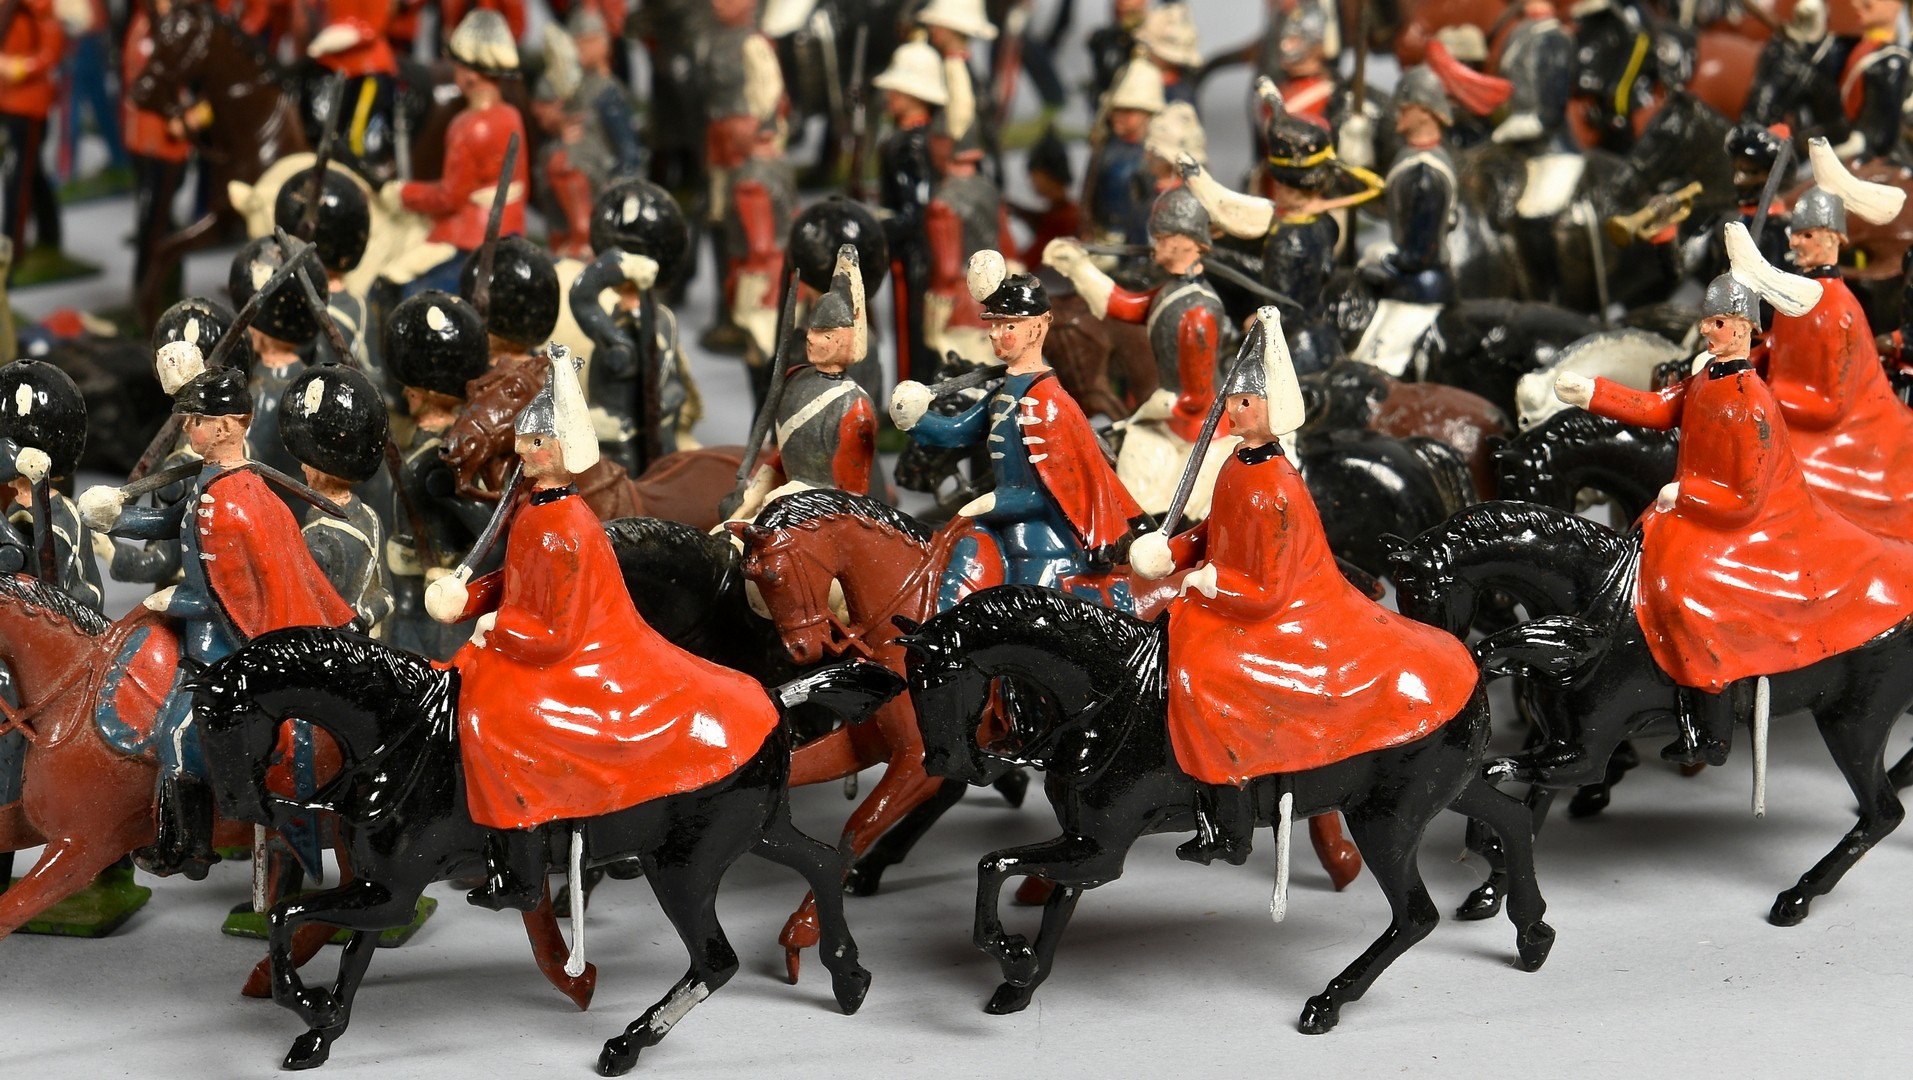 Lot 795: Collection of Toy Soldiers, more than 350